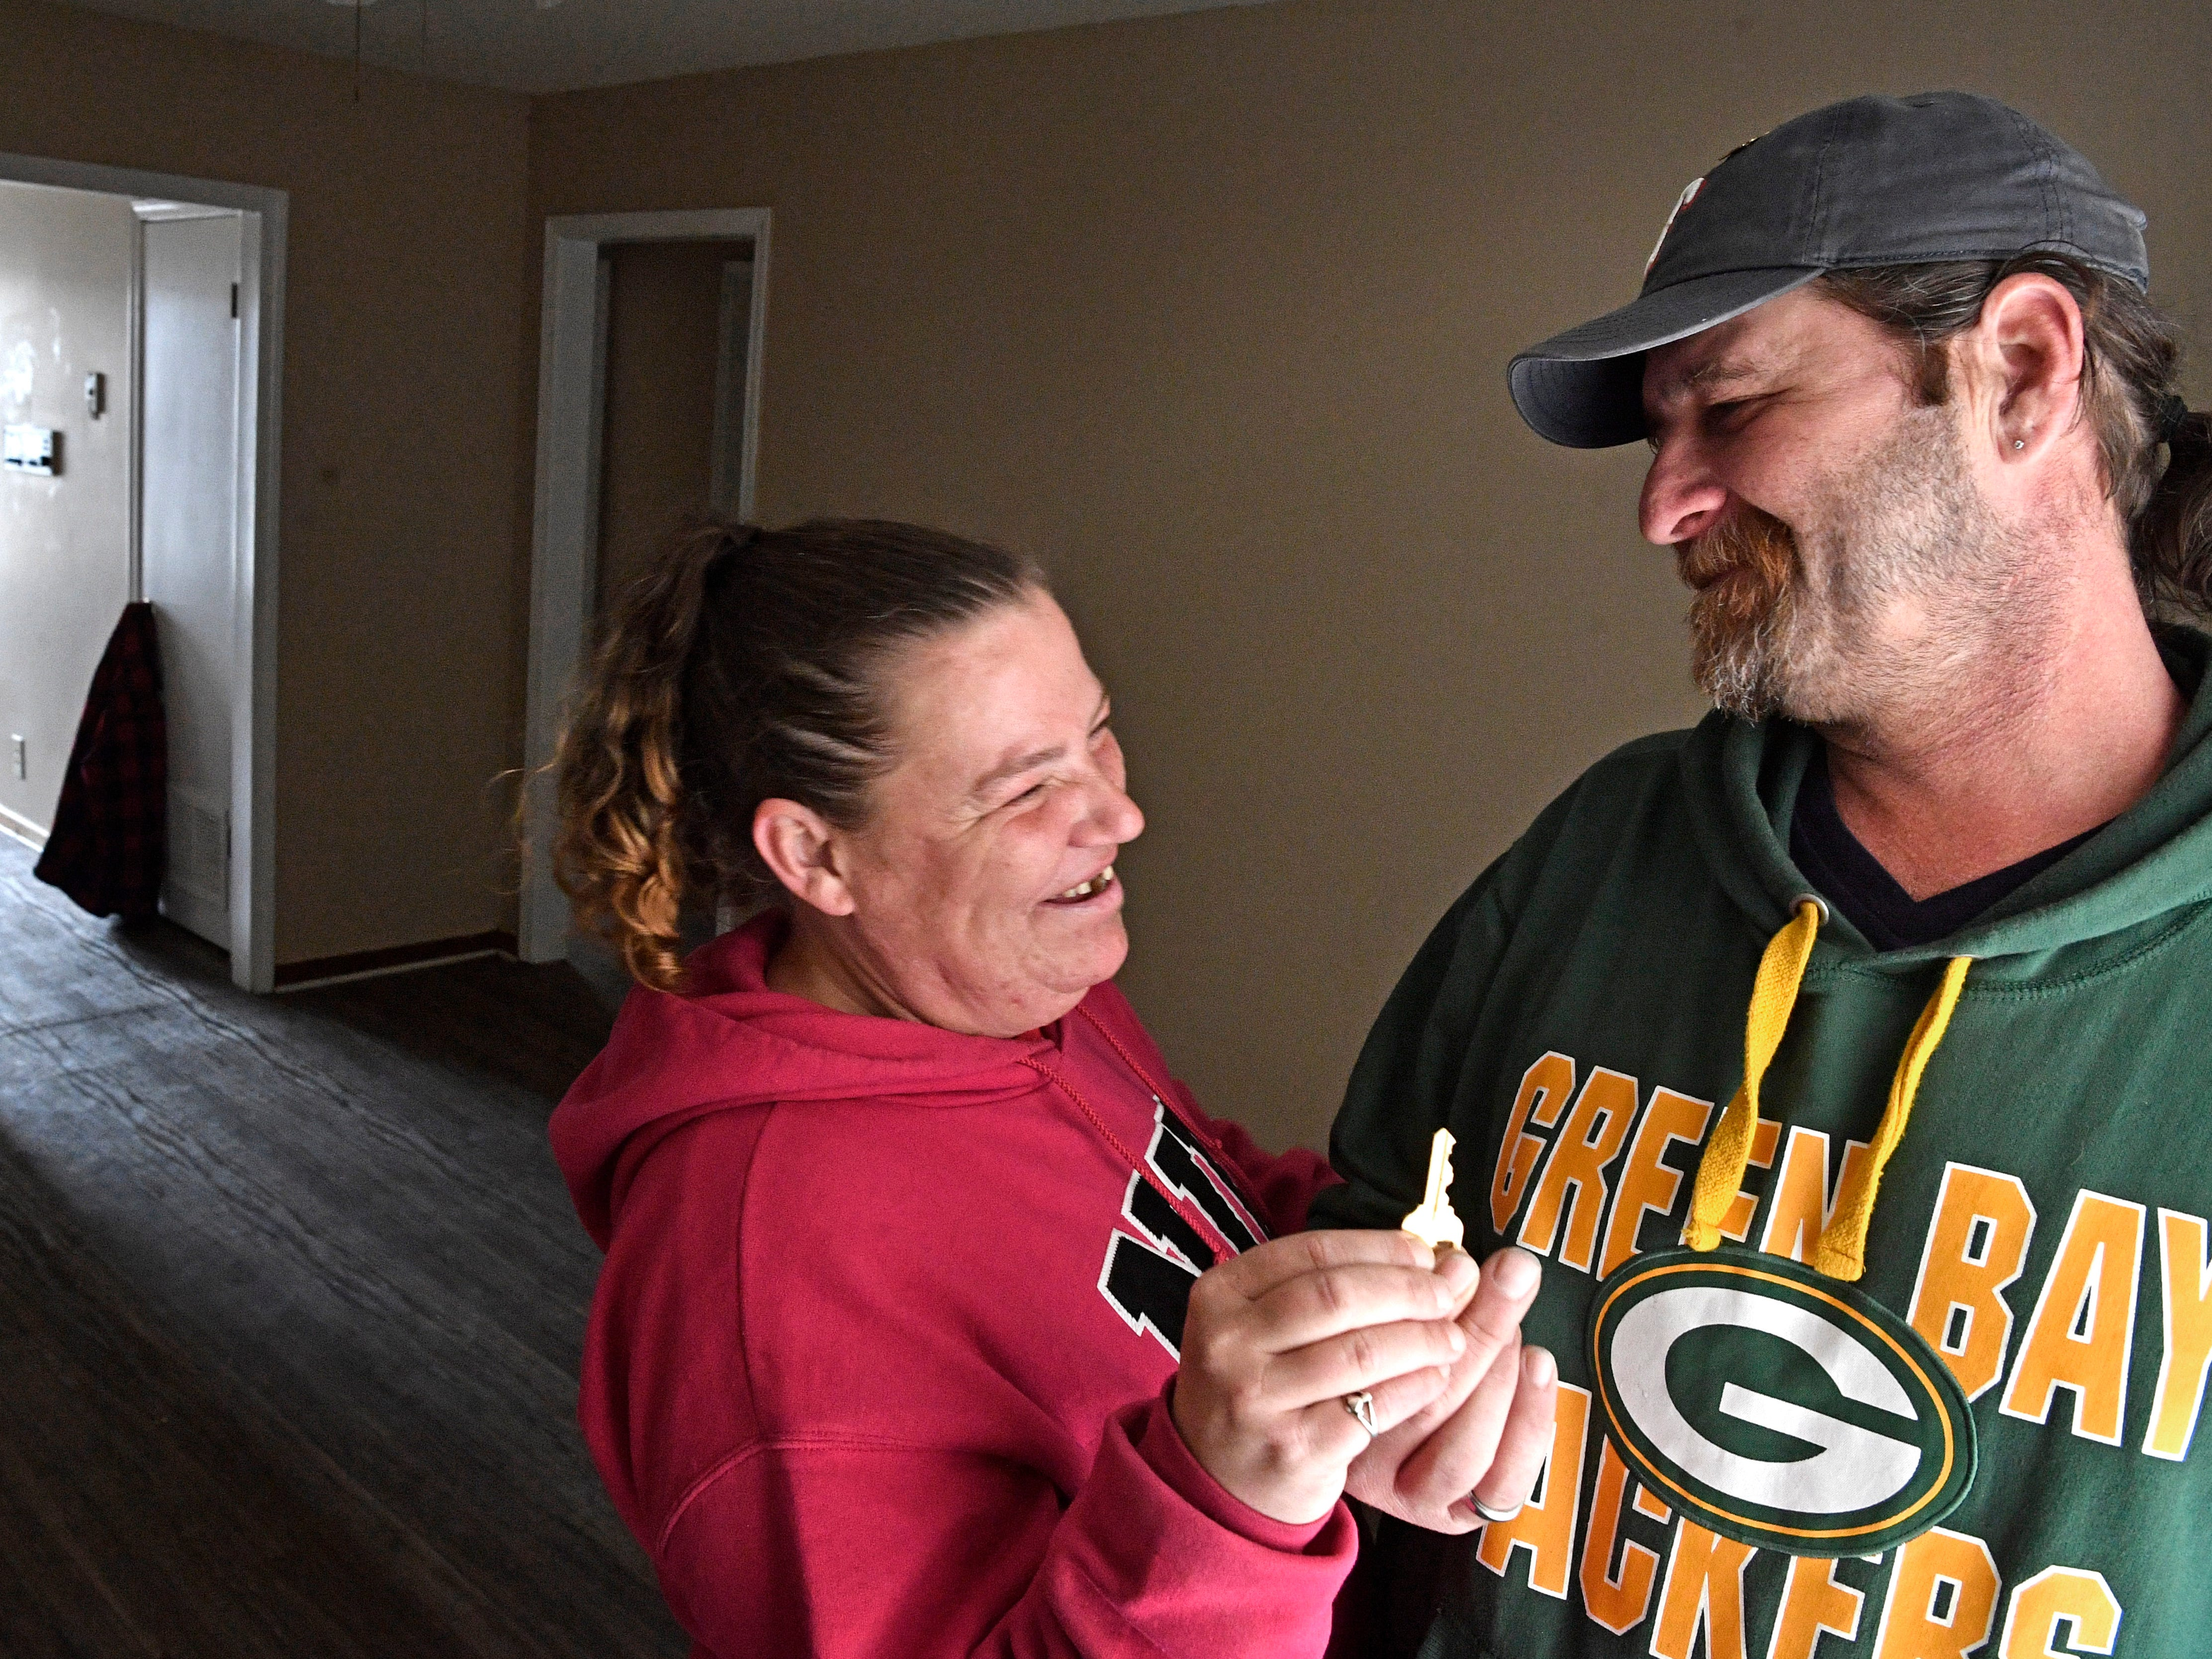 Even though the only furniture they have is a bed, Tommi Jo French and Eddie Goering are so proud that they have a key to their own apartment and now have a roof over their heads after being homeless for months.